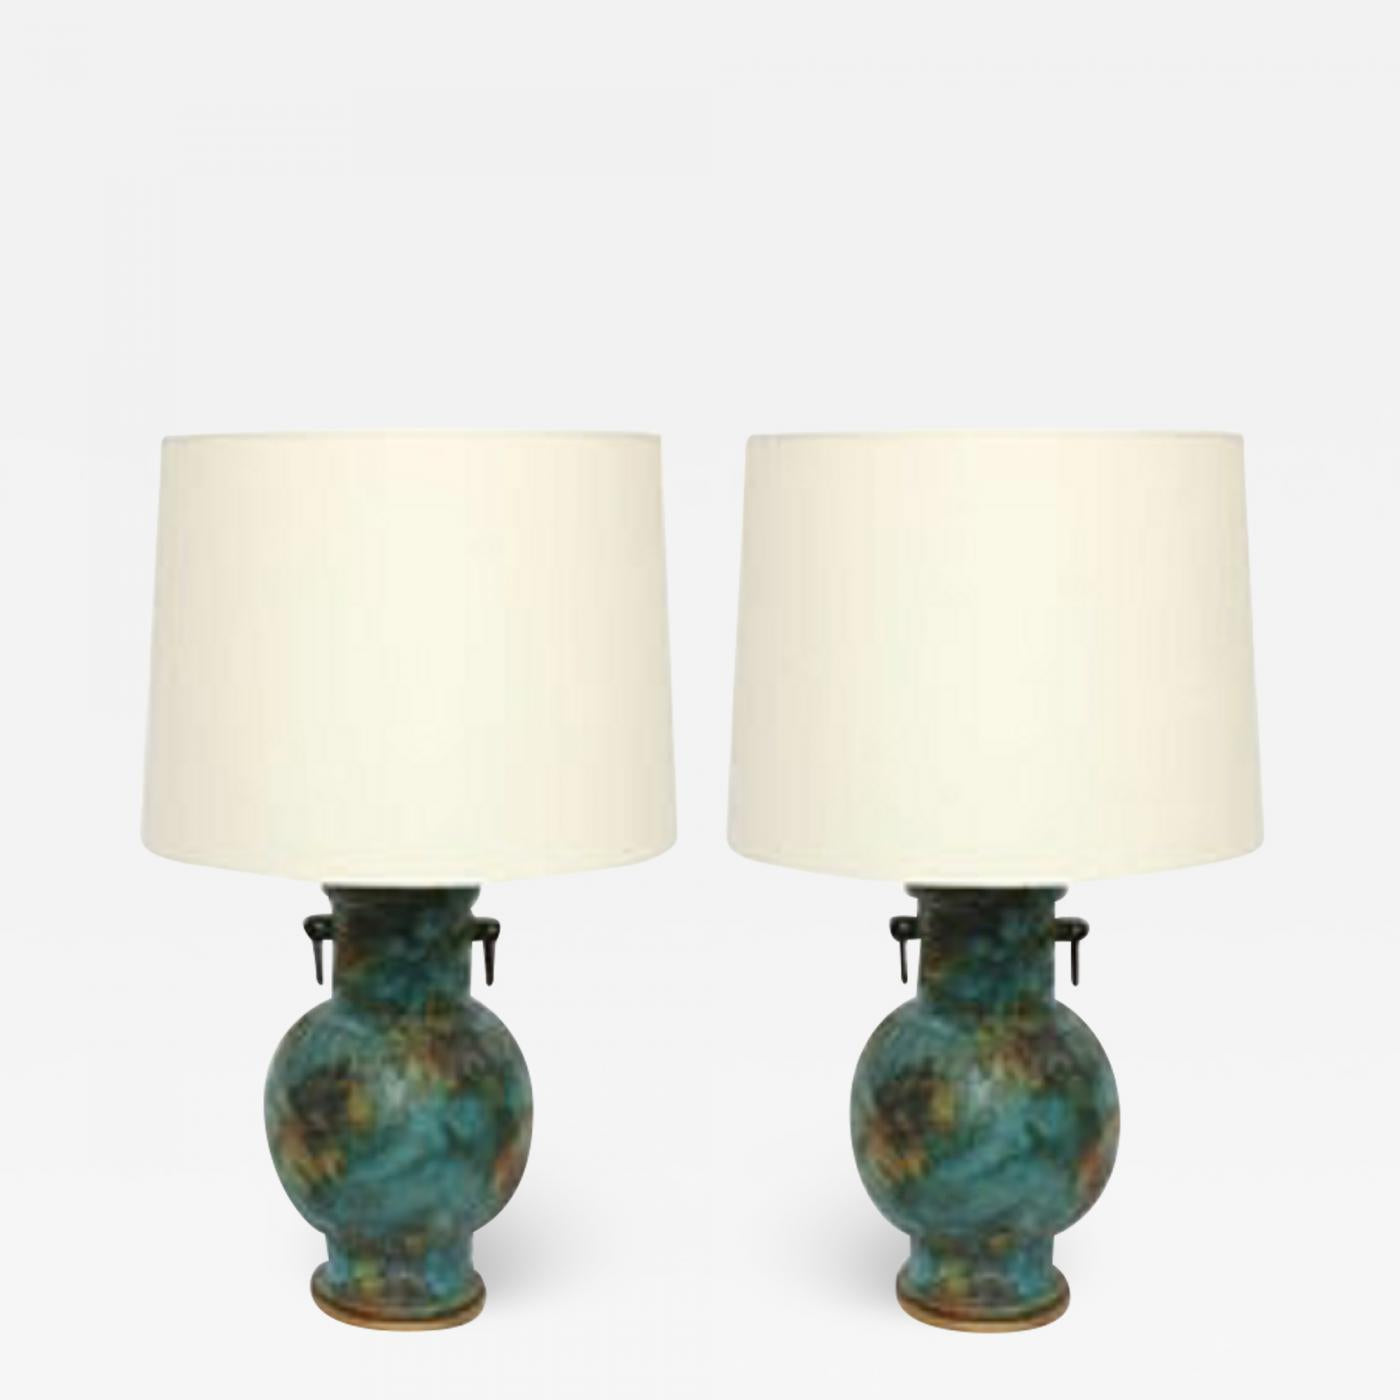 A Pair of 1950's Italian Archaic Modern Ceramic Table Lamps